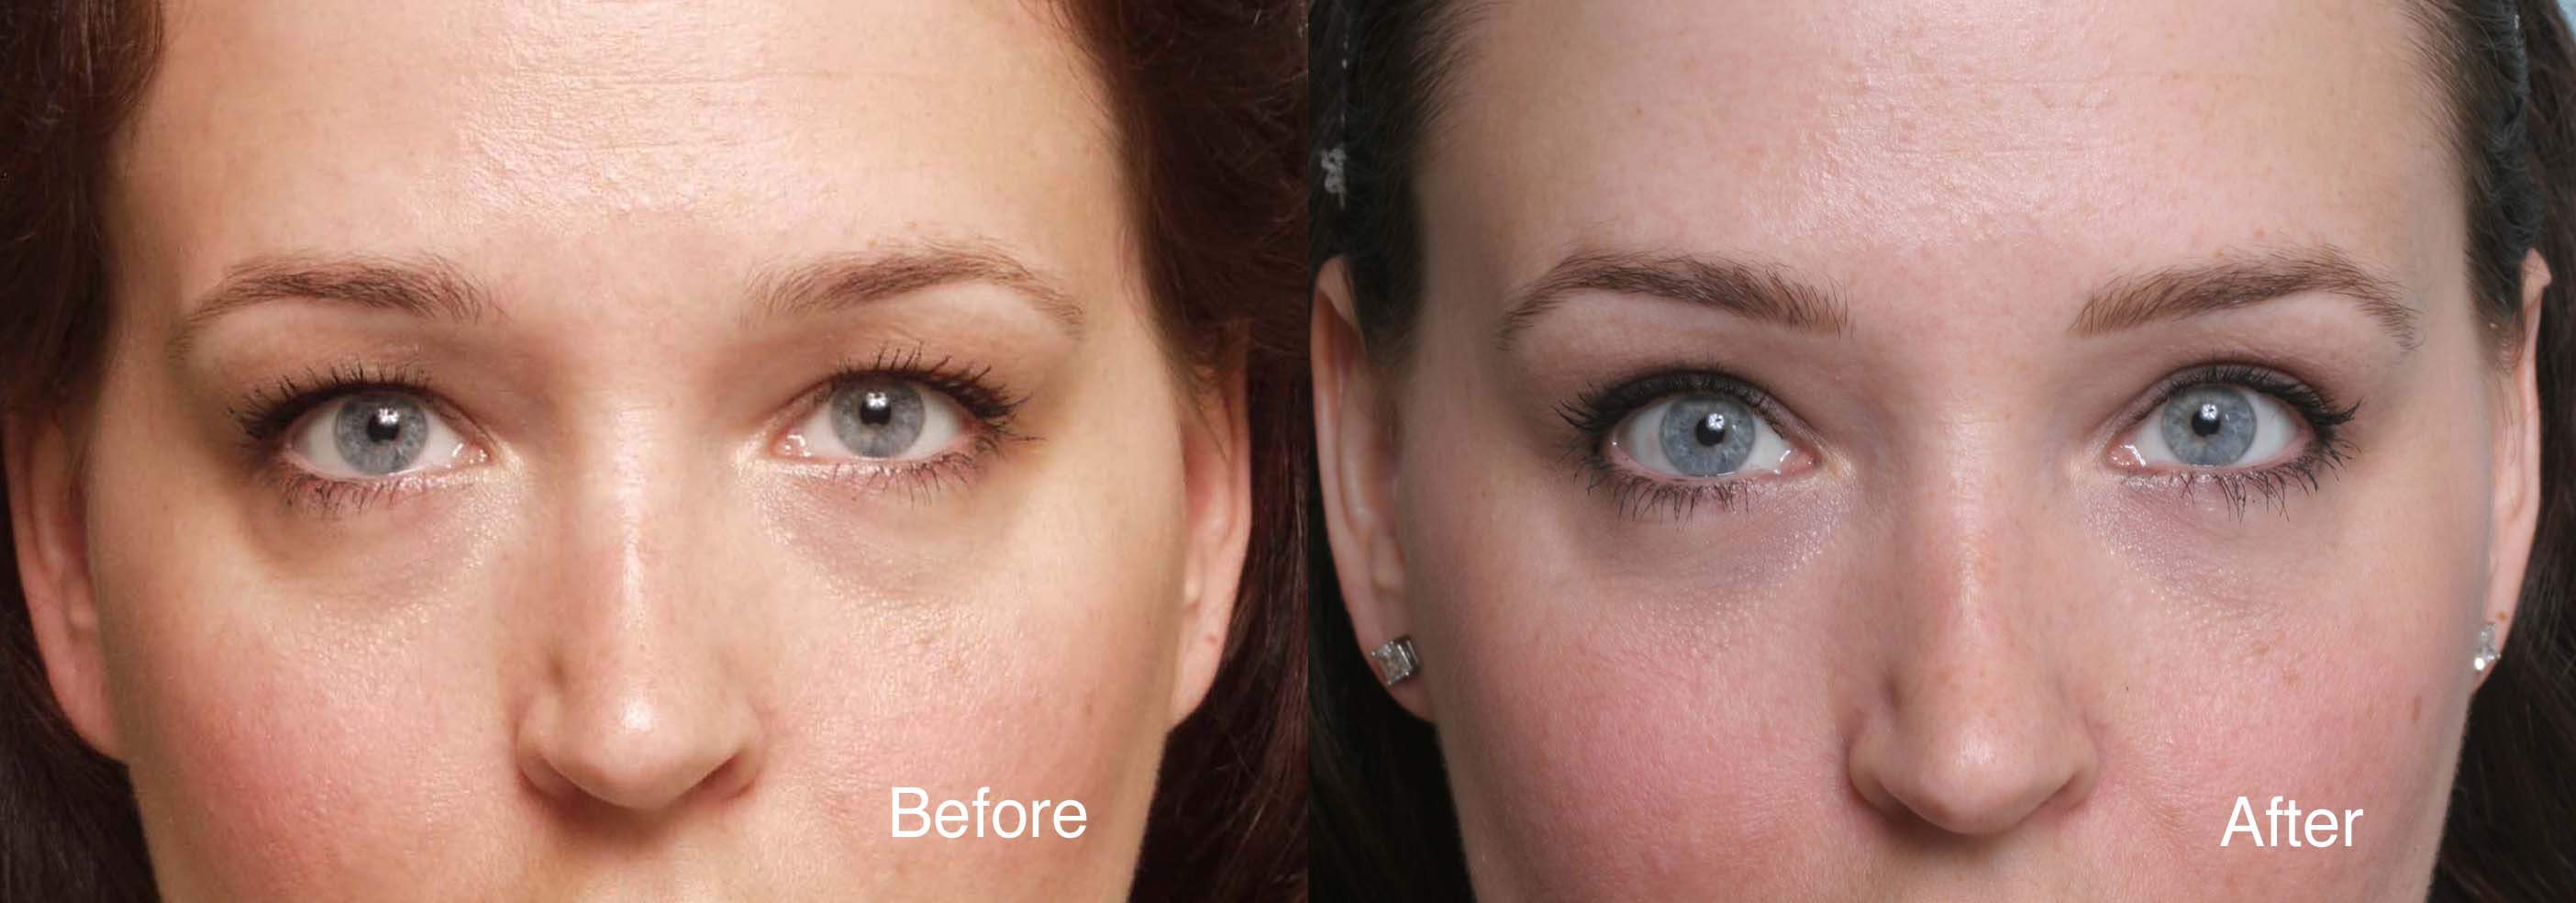 eye plastic surgery pictures photo - 1